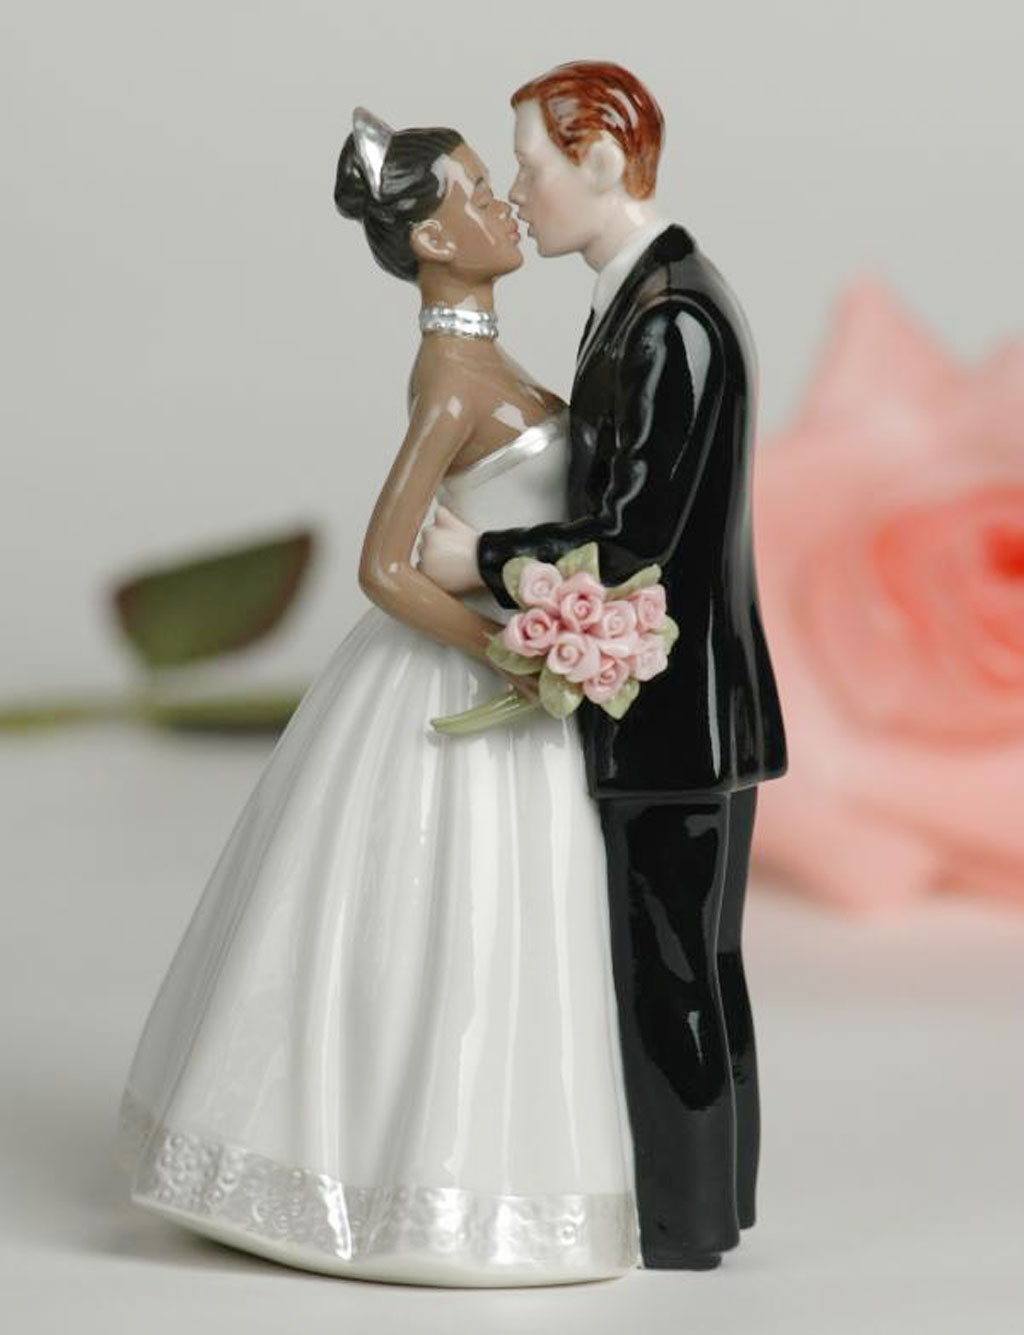 interracial biracial wedding cake topper wedding cake cake ideas by. Black Bedroom Furniture Sets. Home Design Ideas